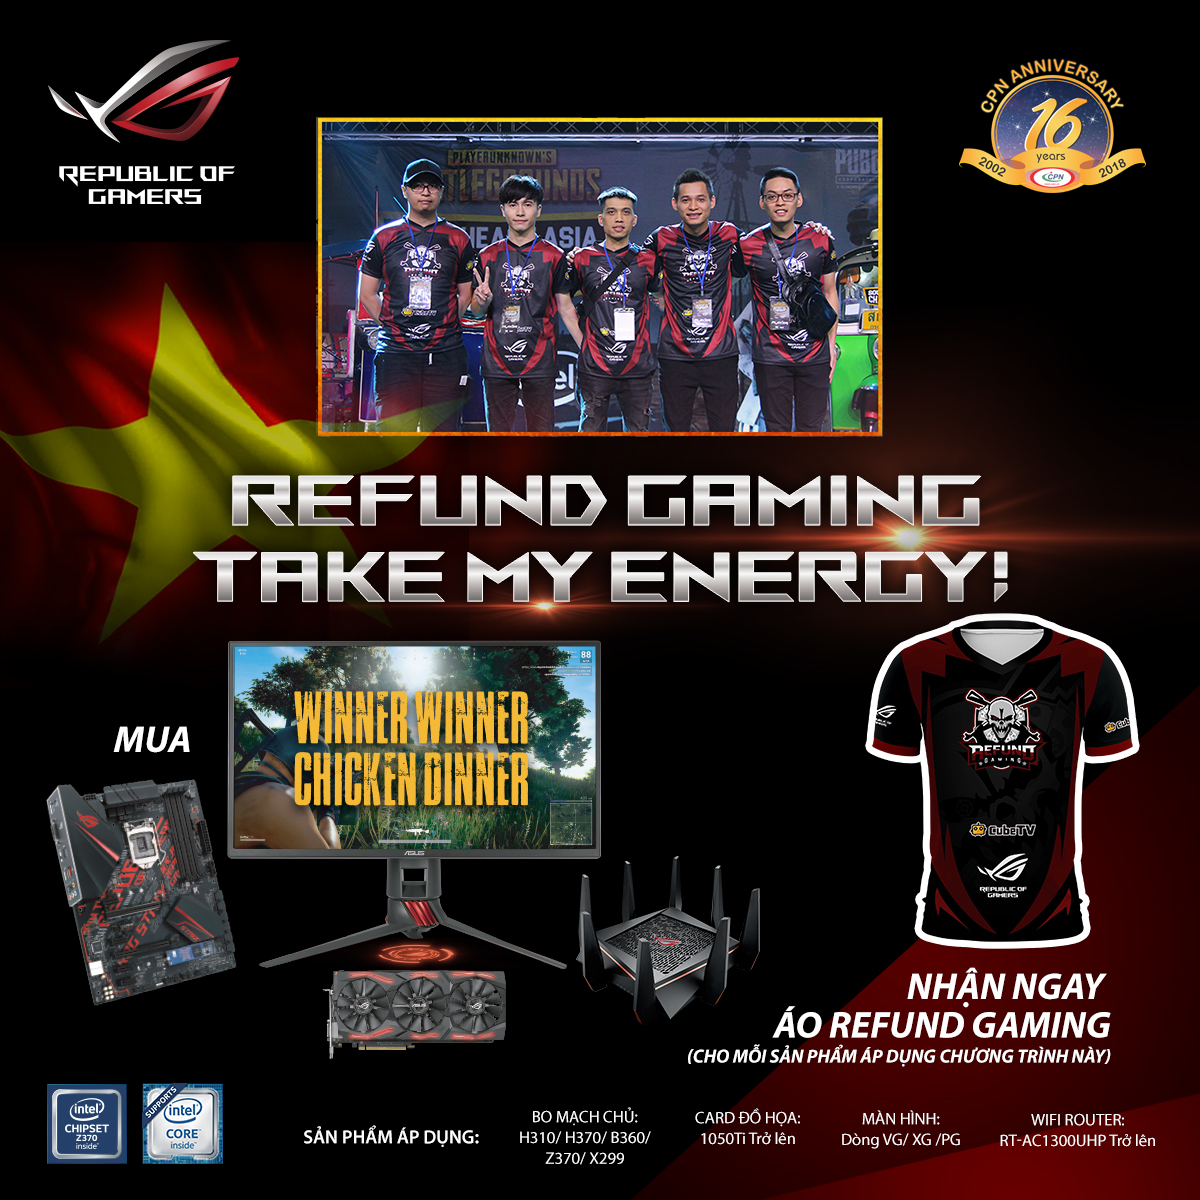 refund-gaming-promotion-fb-post.png